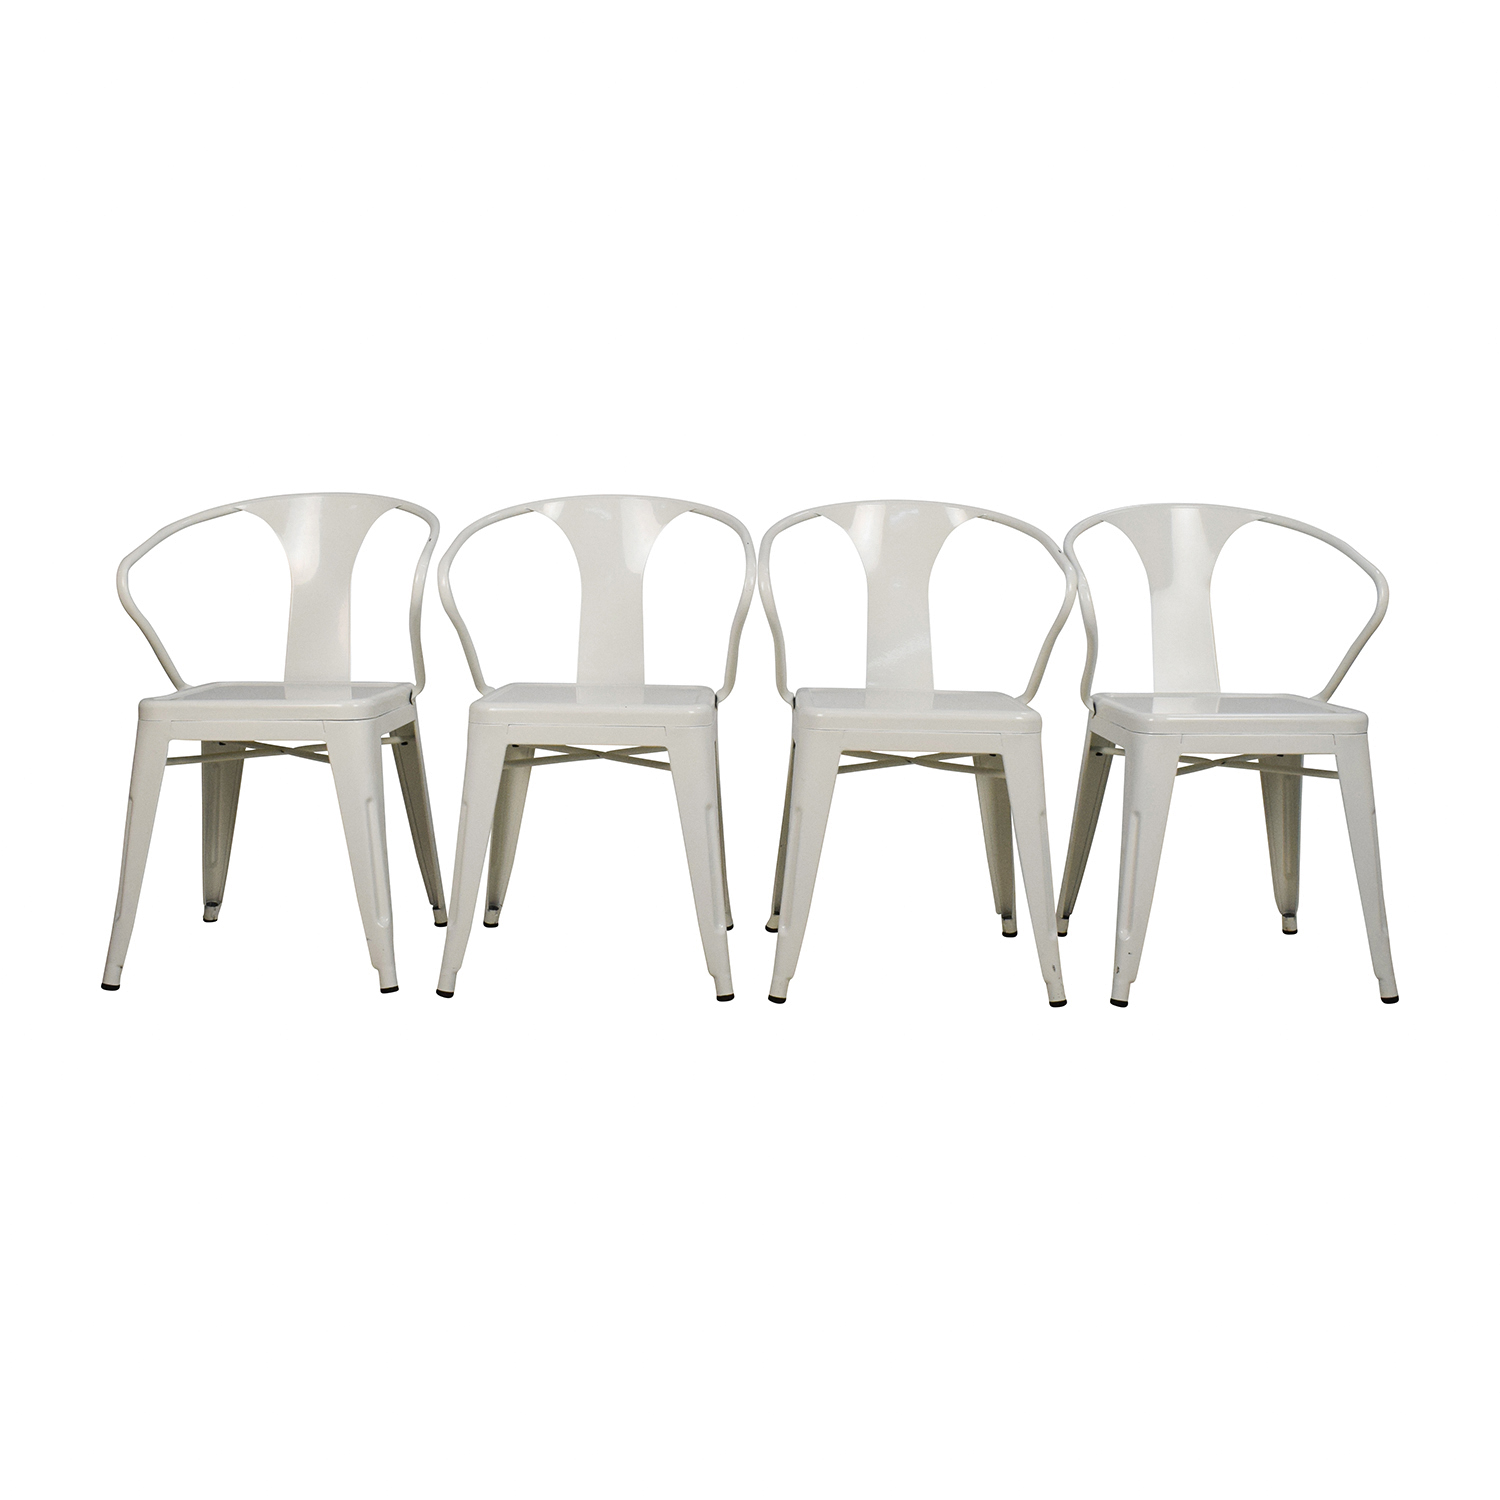 Overstock Overstock Set of Four White European Chairs nj